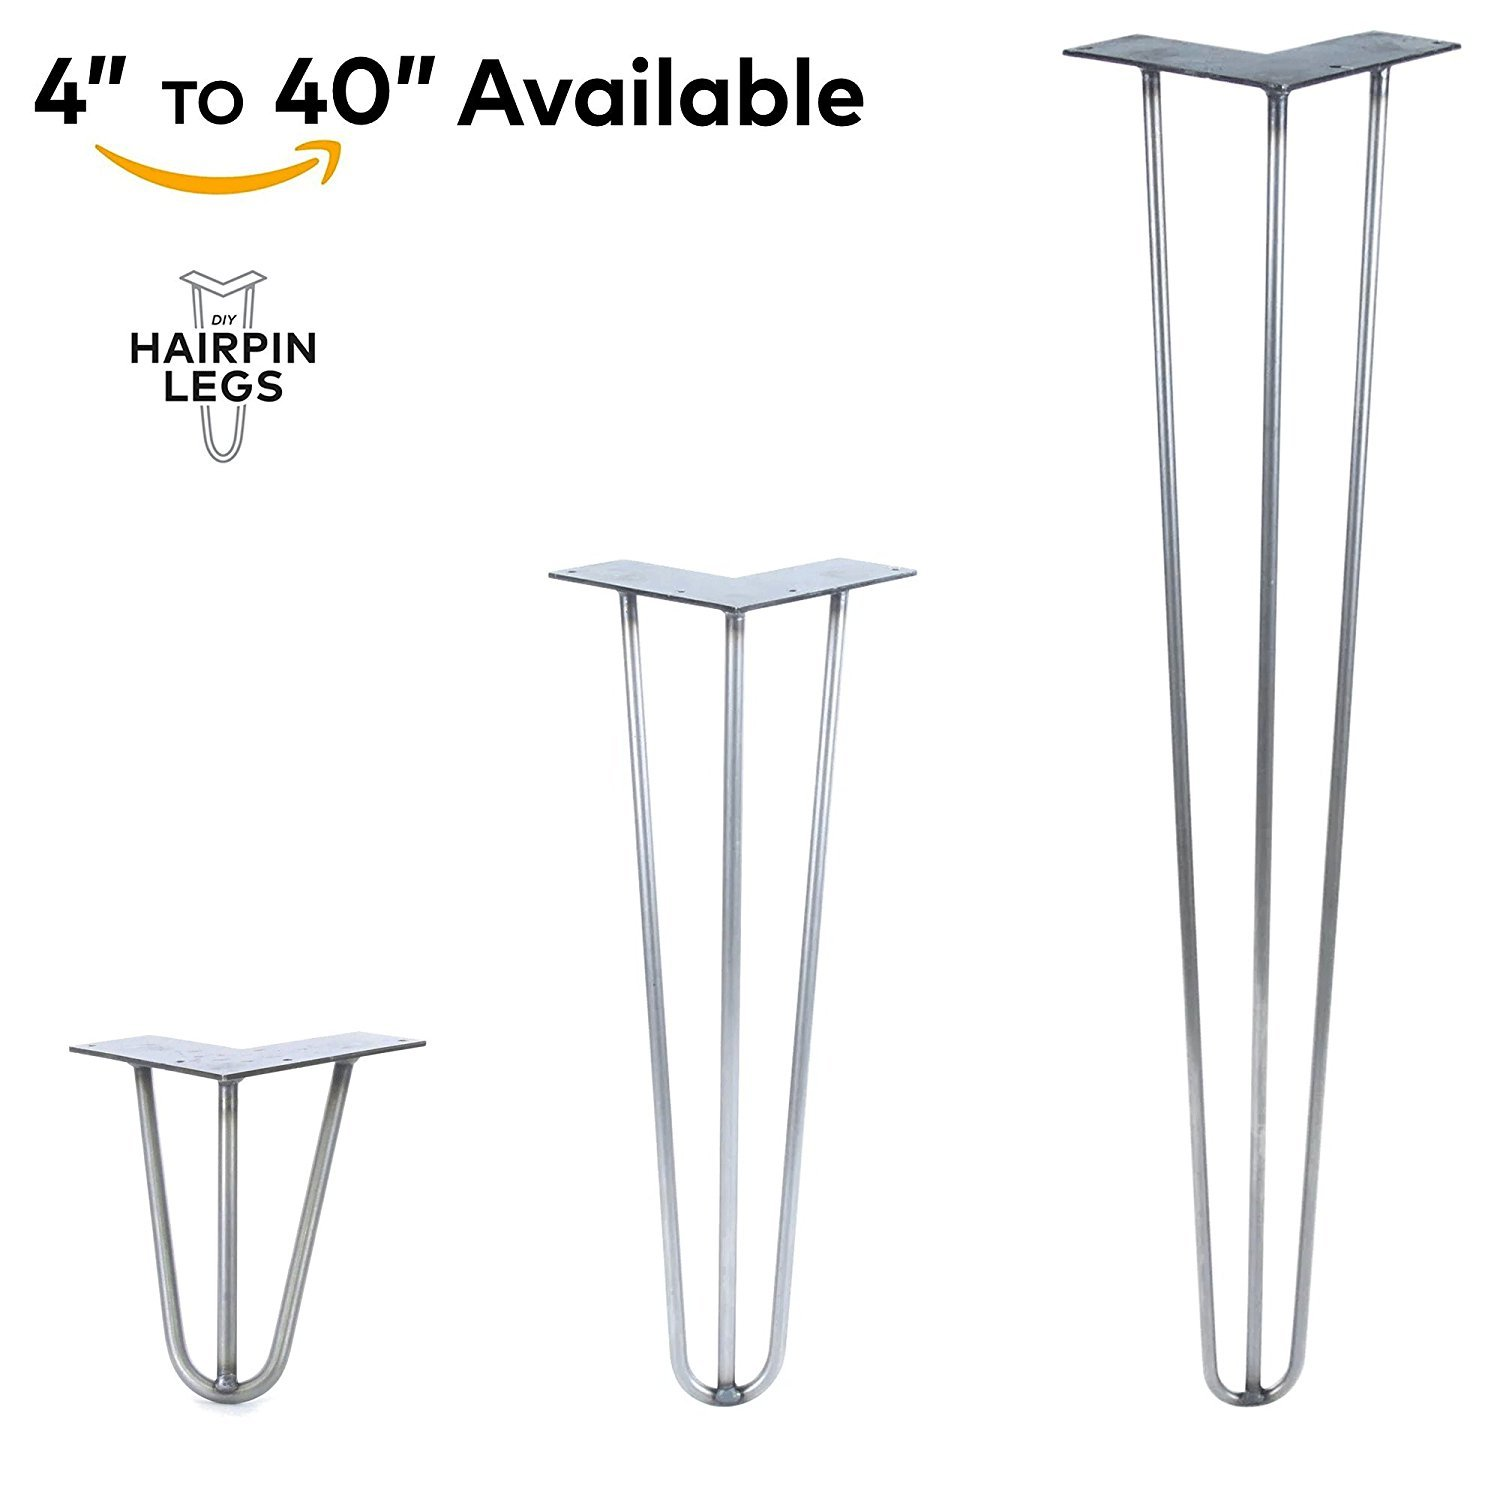 "4'' - 40'' Hairpin Legs - 3Rod Design - Raw Steel - 1/2'' Diameter - MADE in the USA (4"" Height x 1/2'' Diameter - Each Leg Sold Separately)"